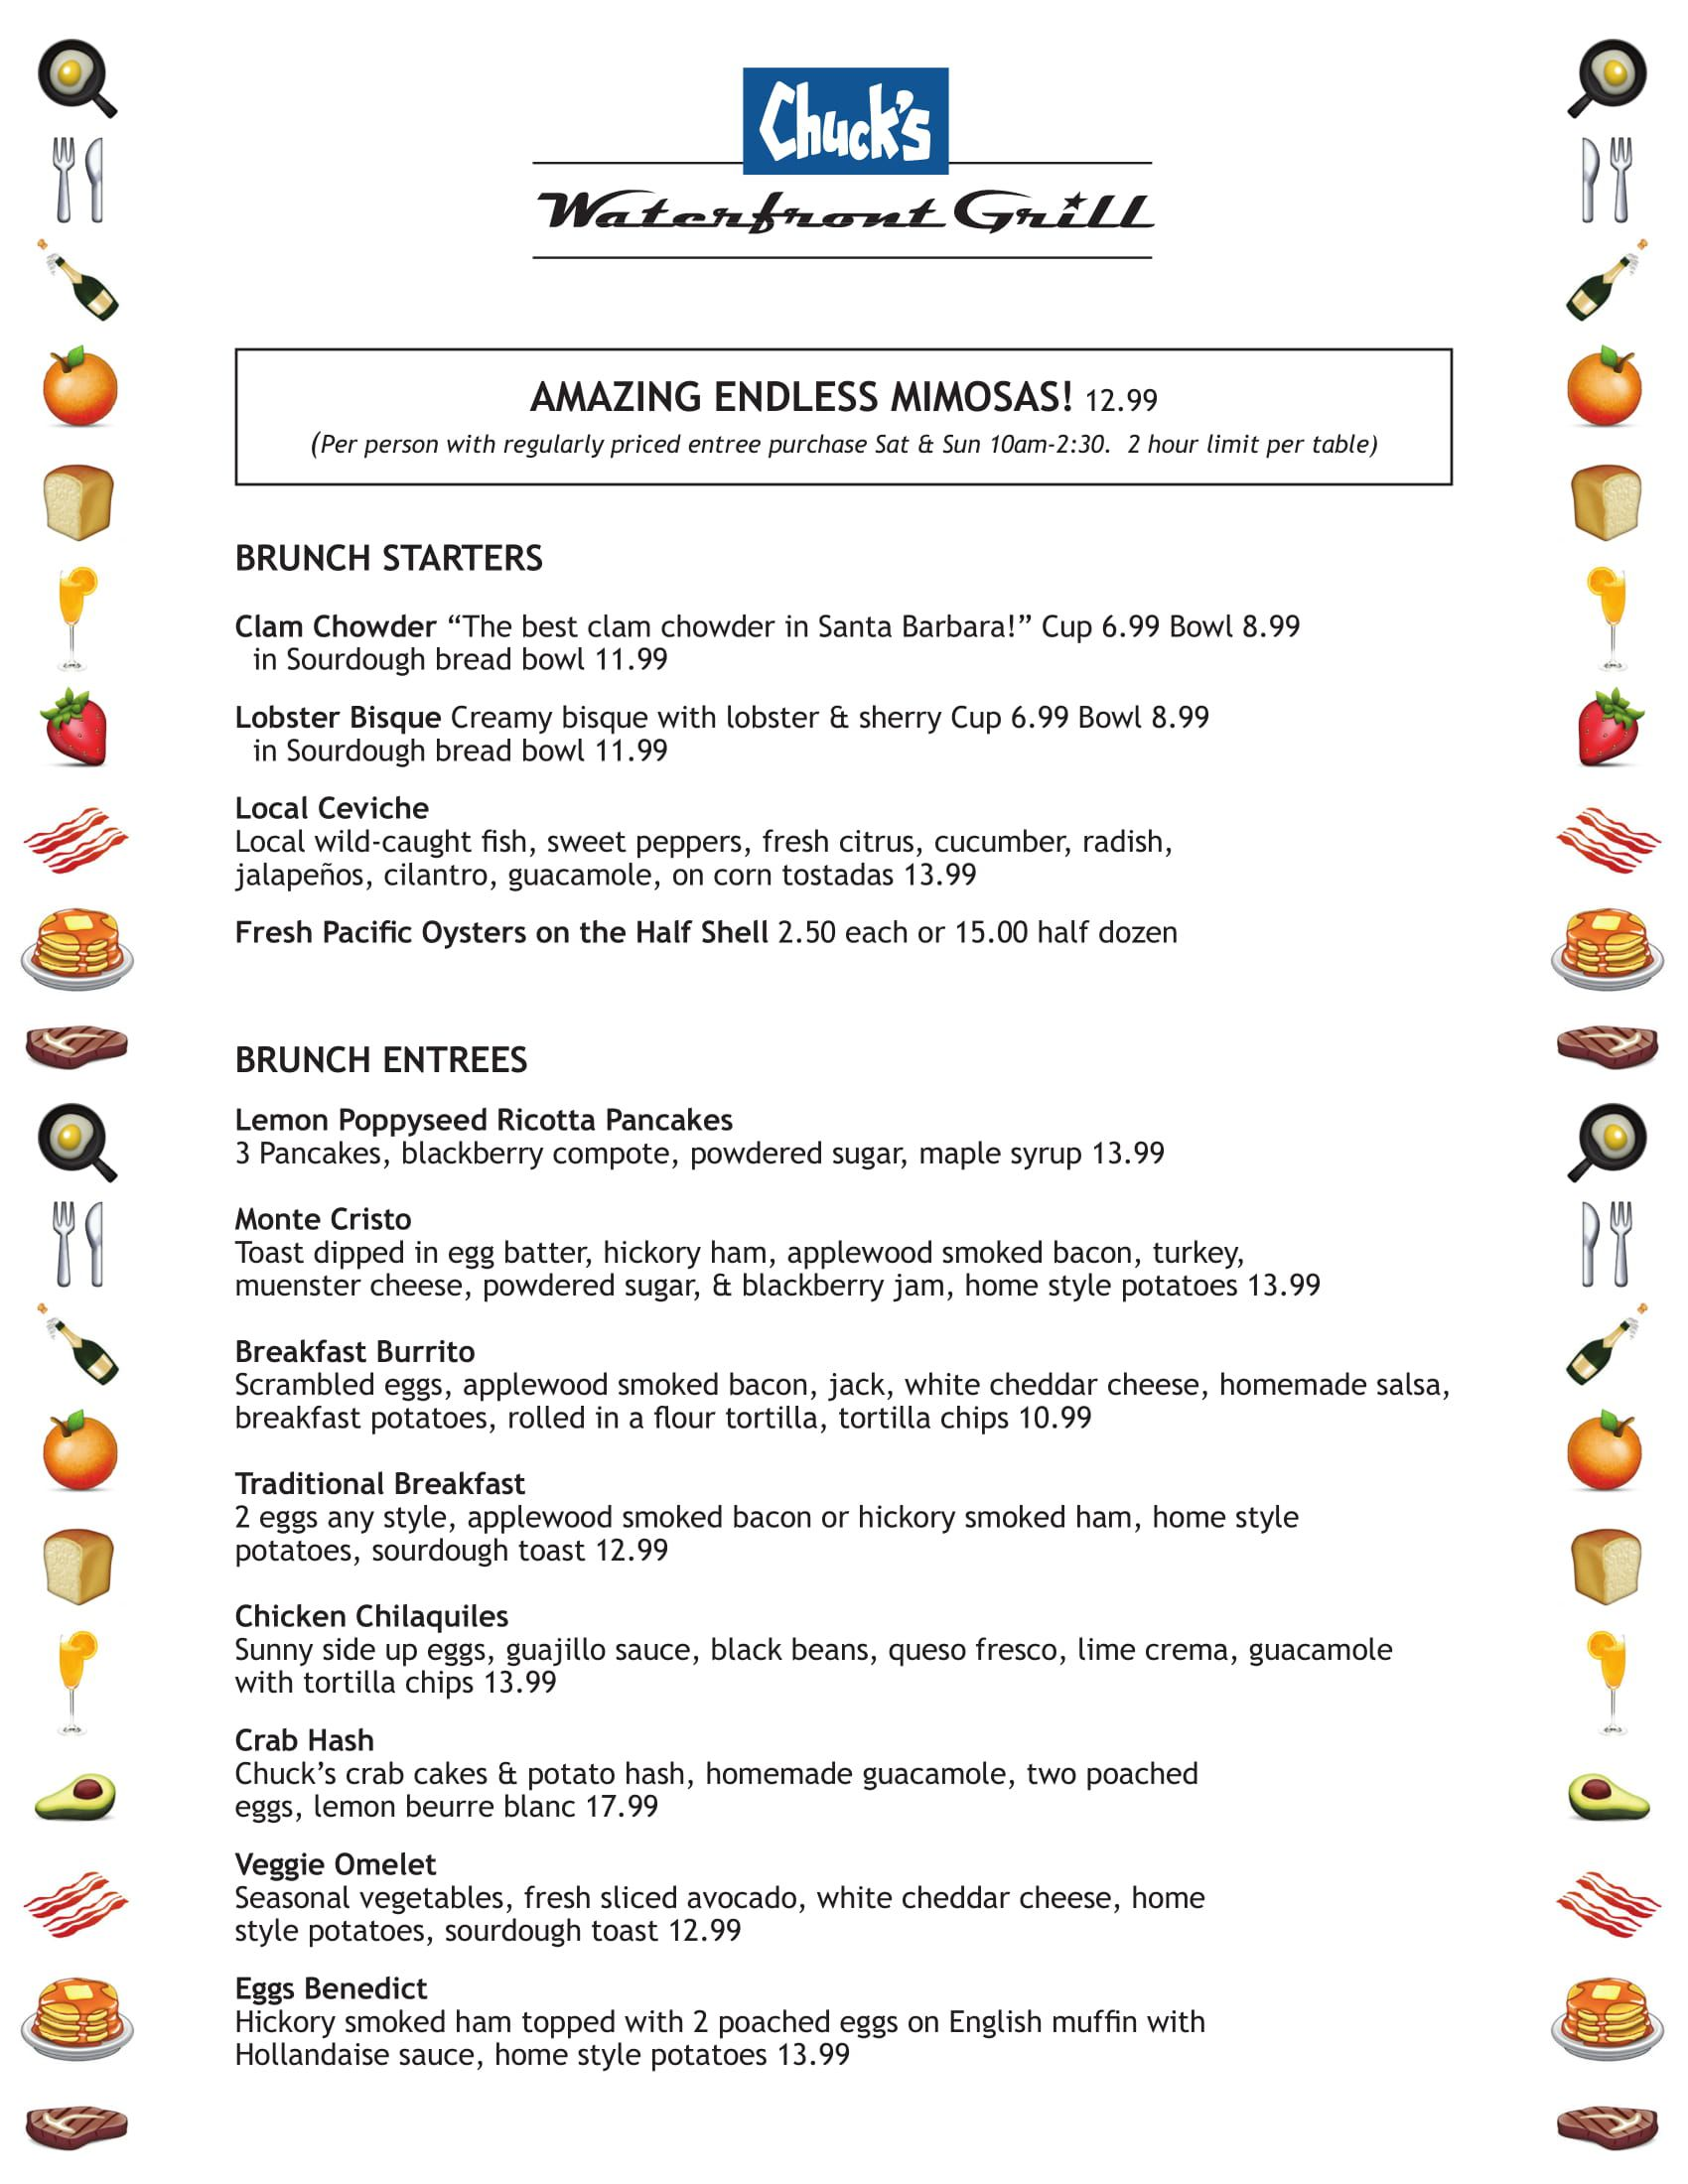 Brunch Menu - Chuck's Waterfront Grill